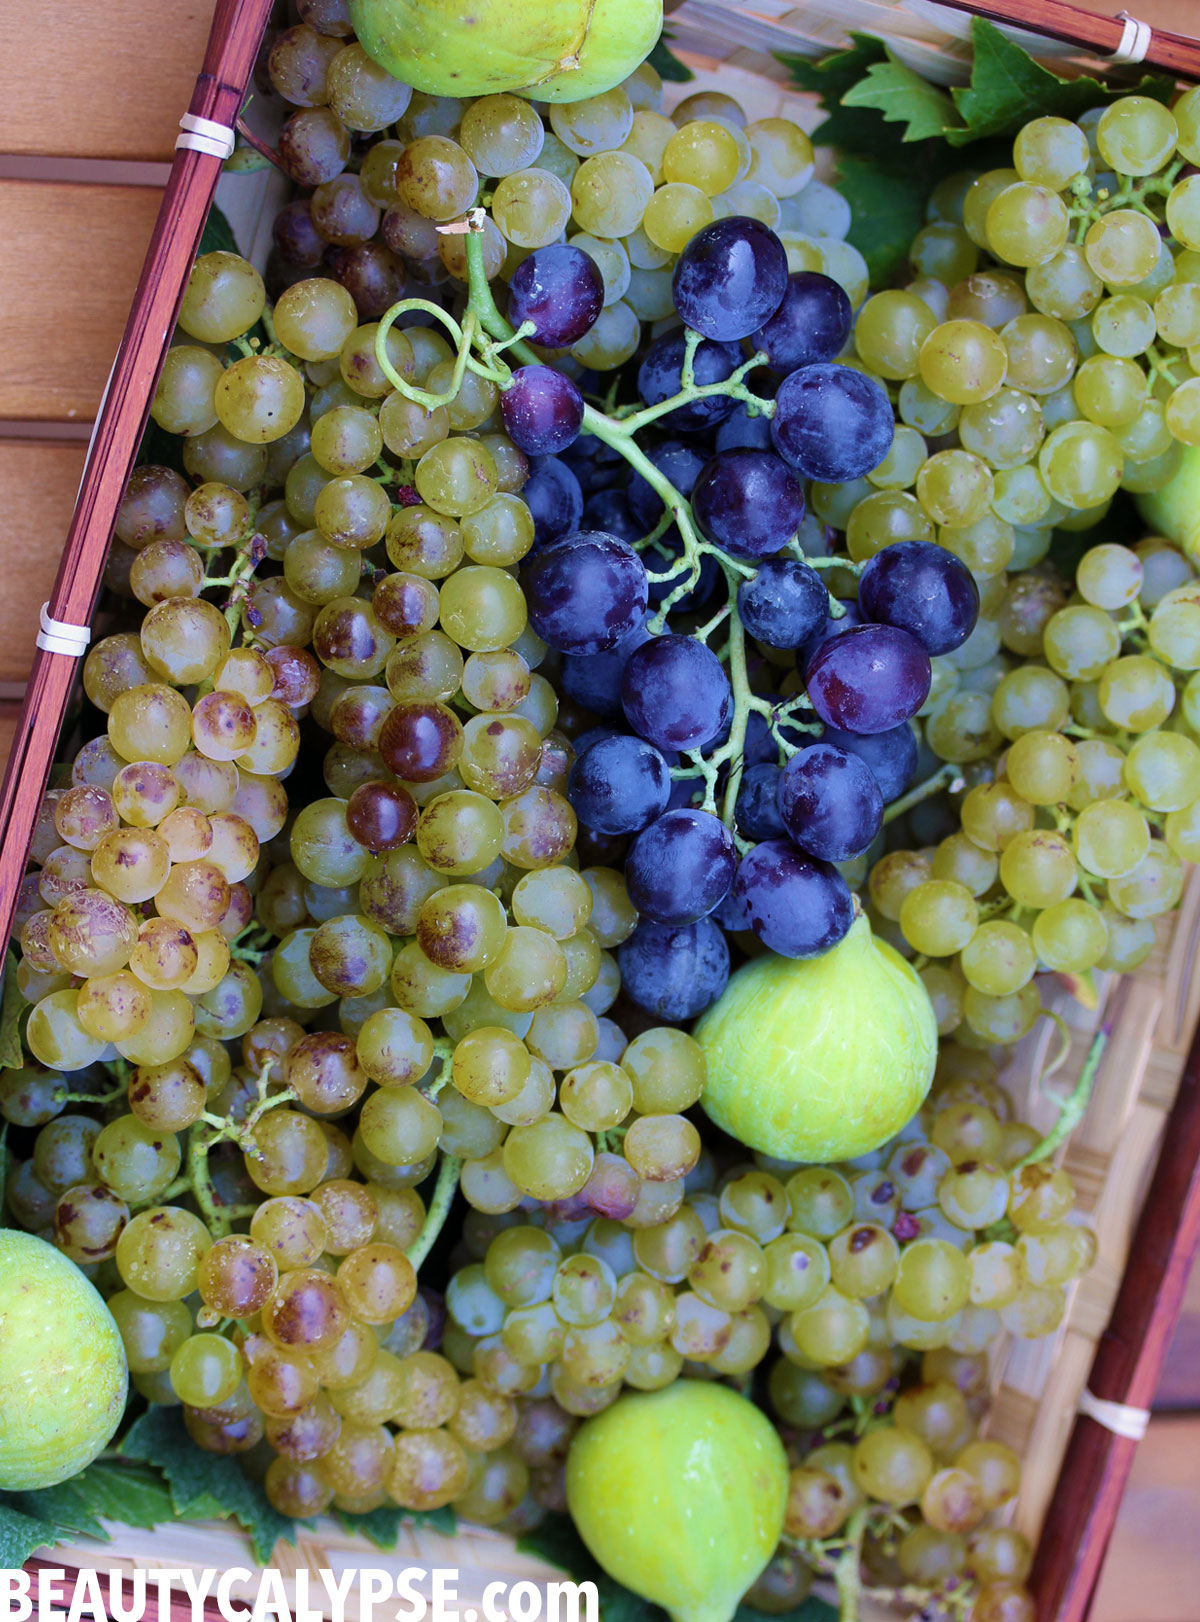 figs-and-grapes